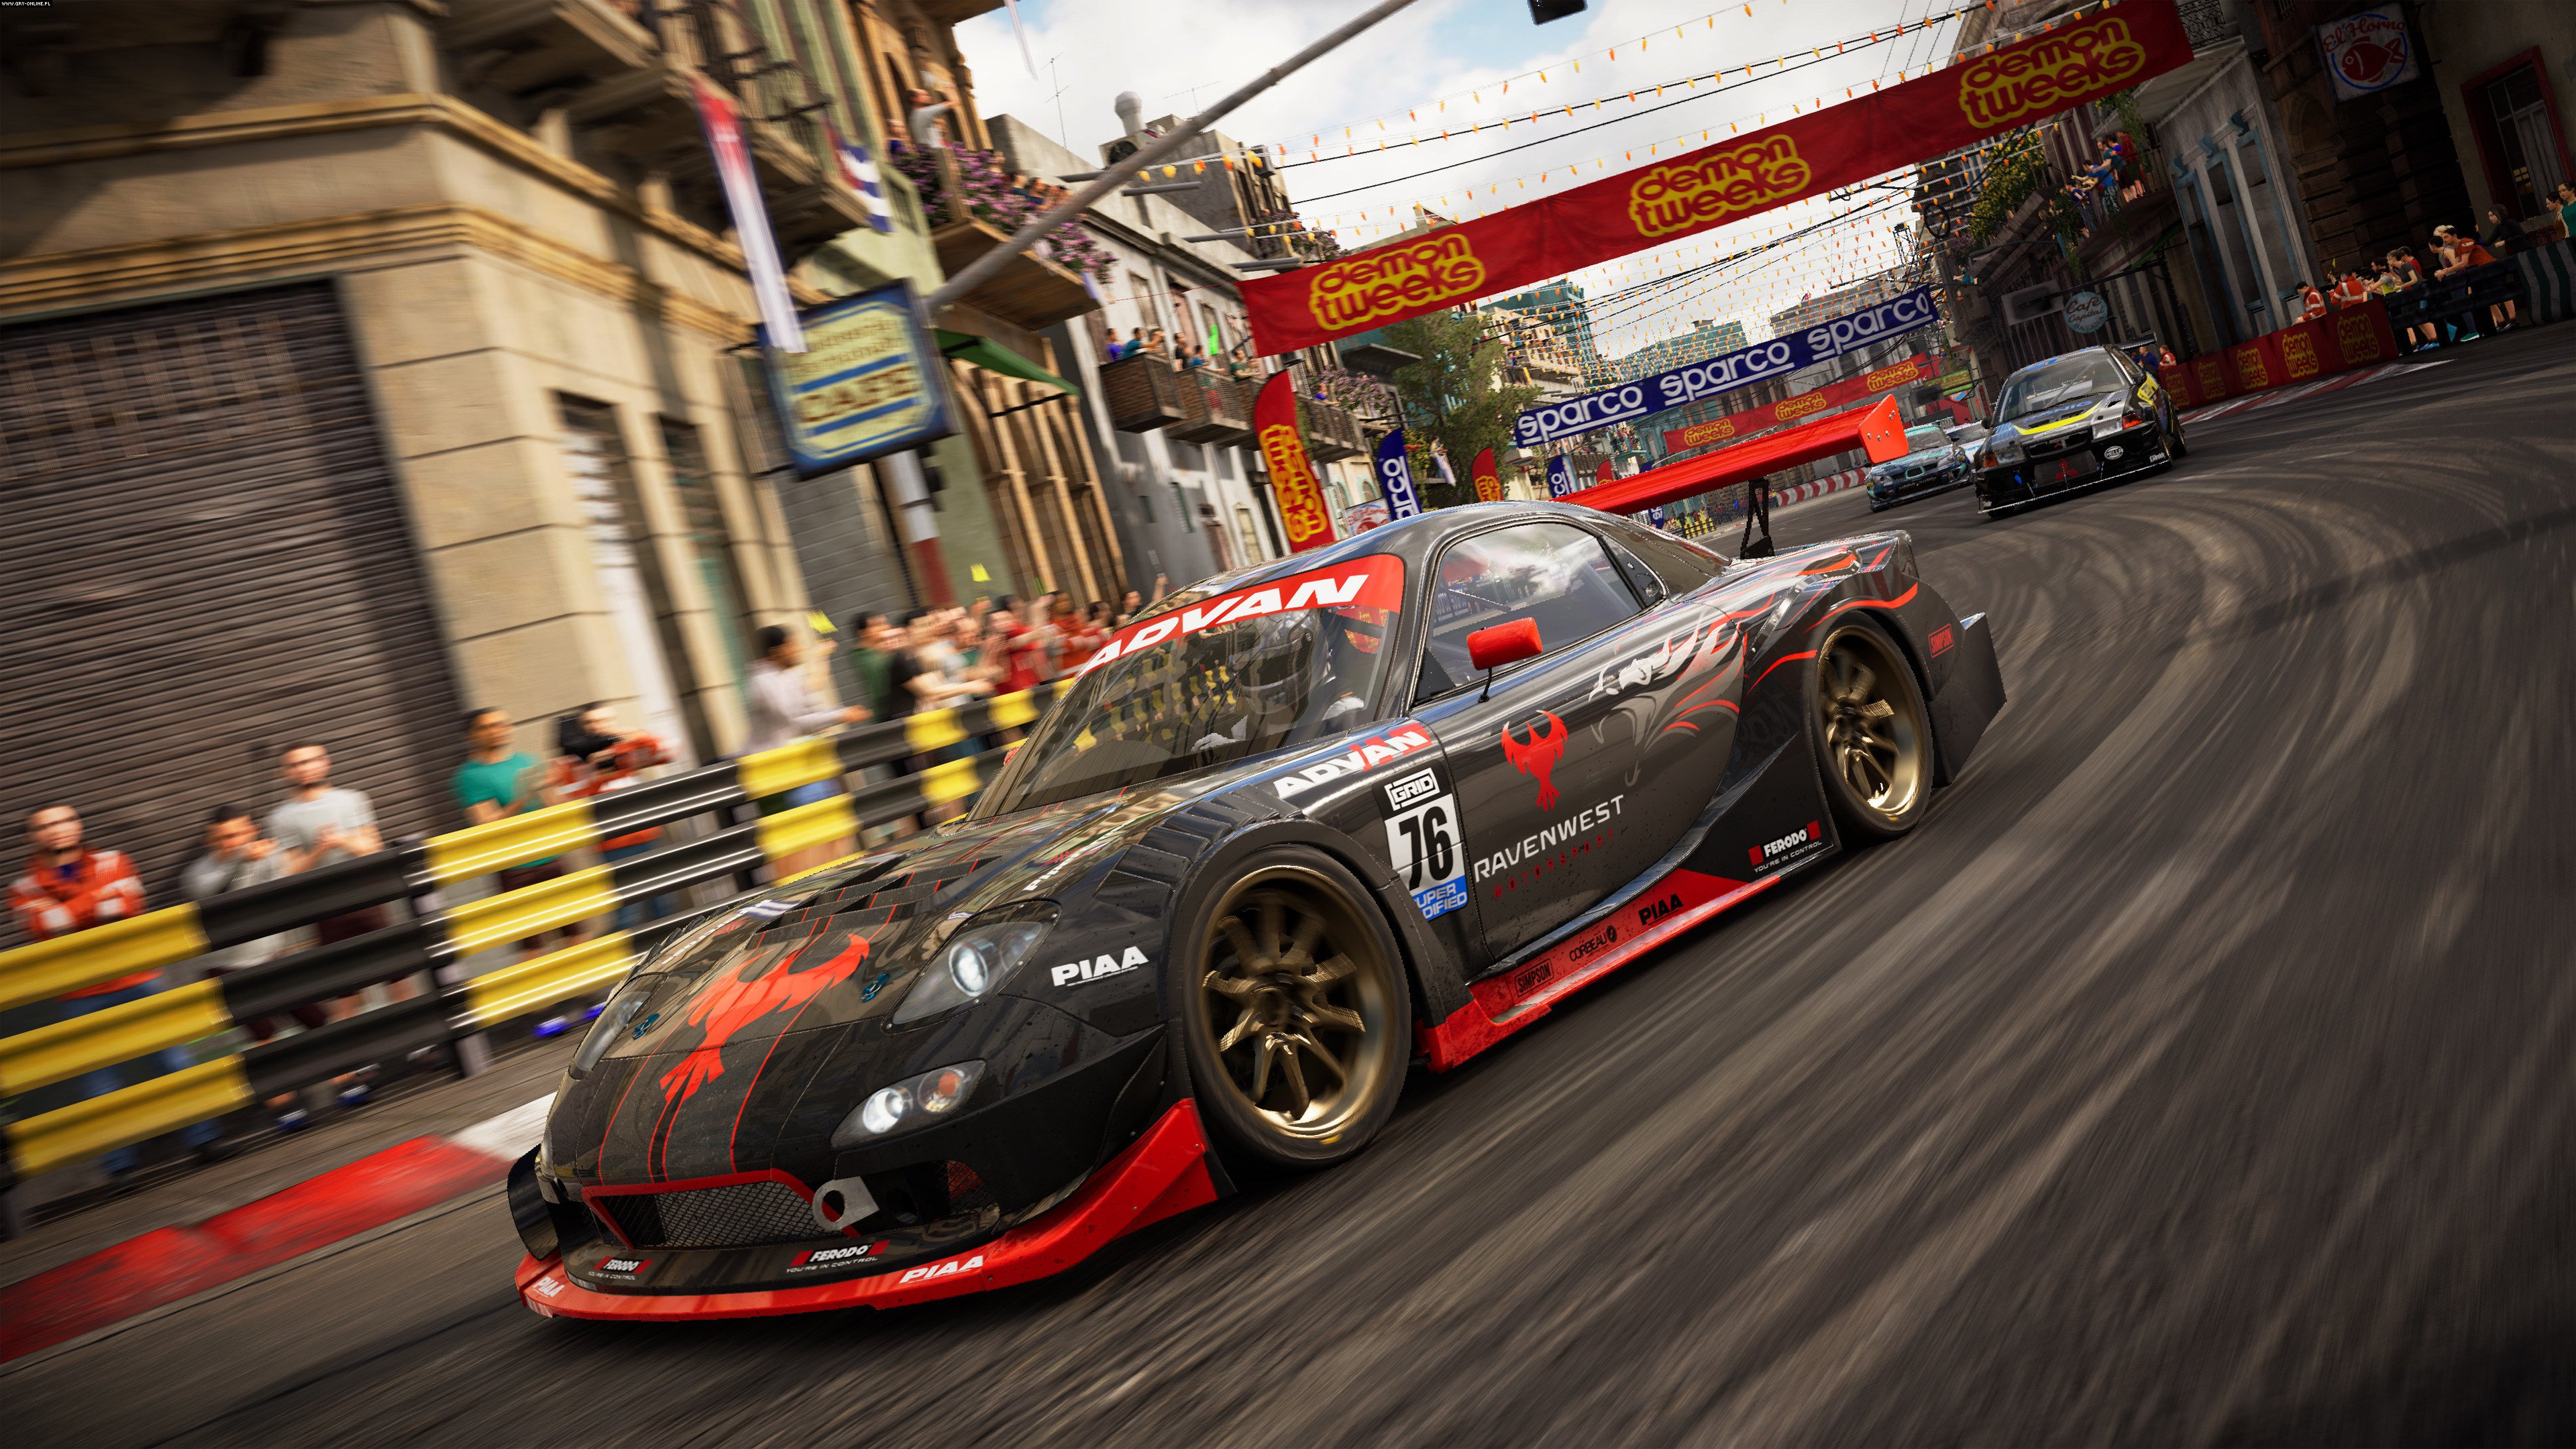 GRID PC, PS4, XONE Games Image 30/49, Codemasters Software